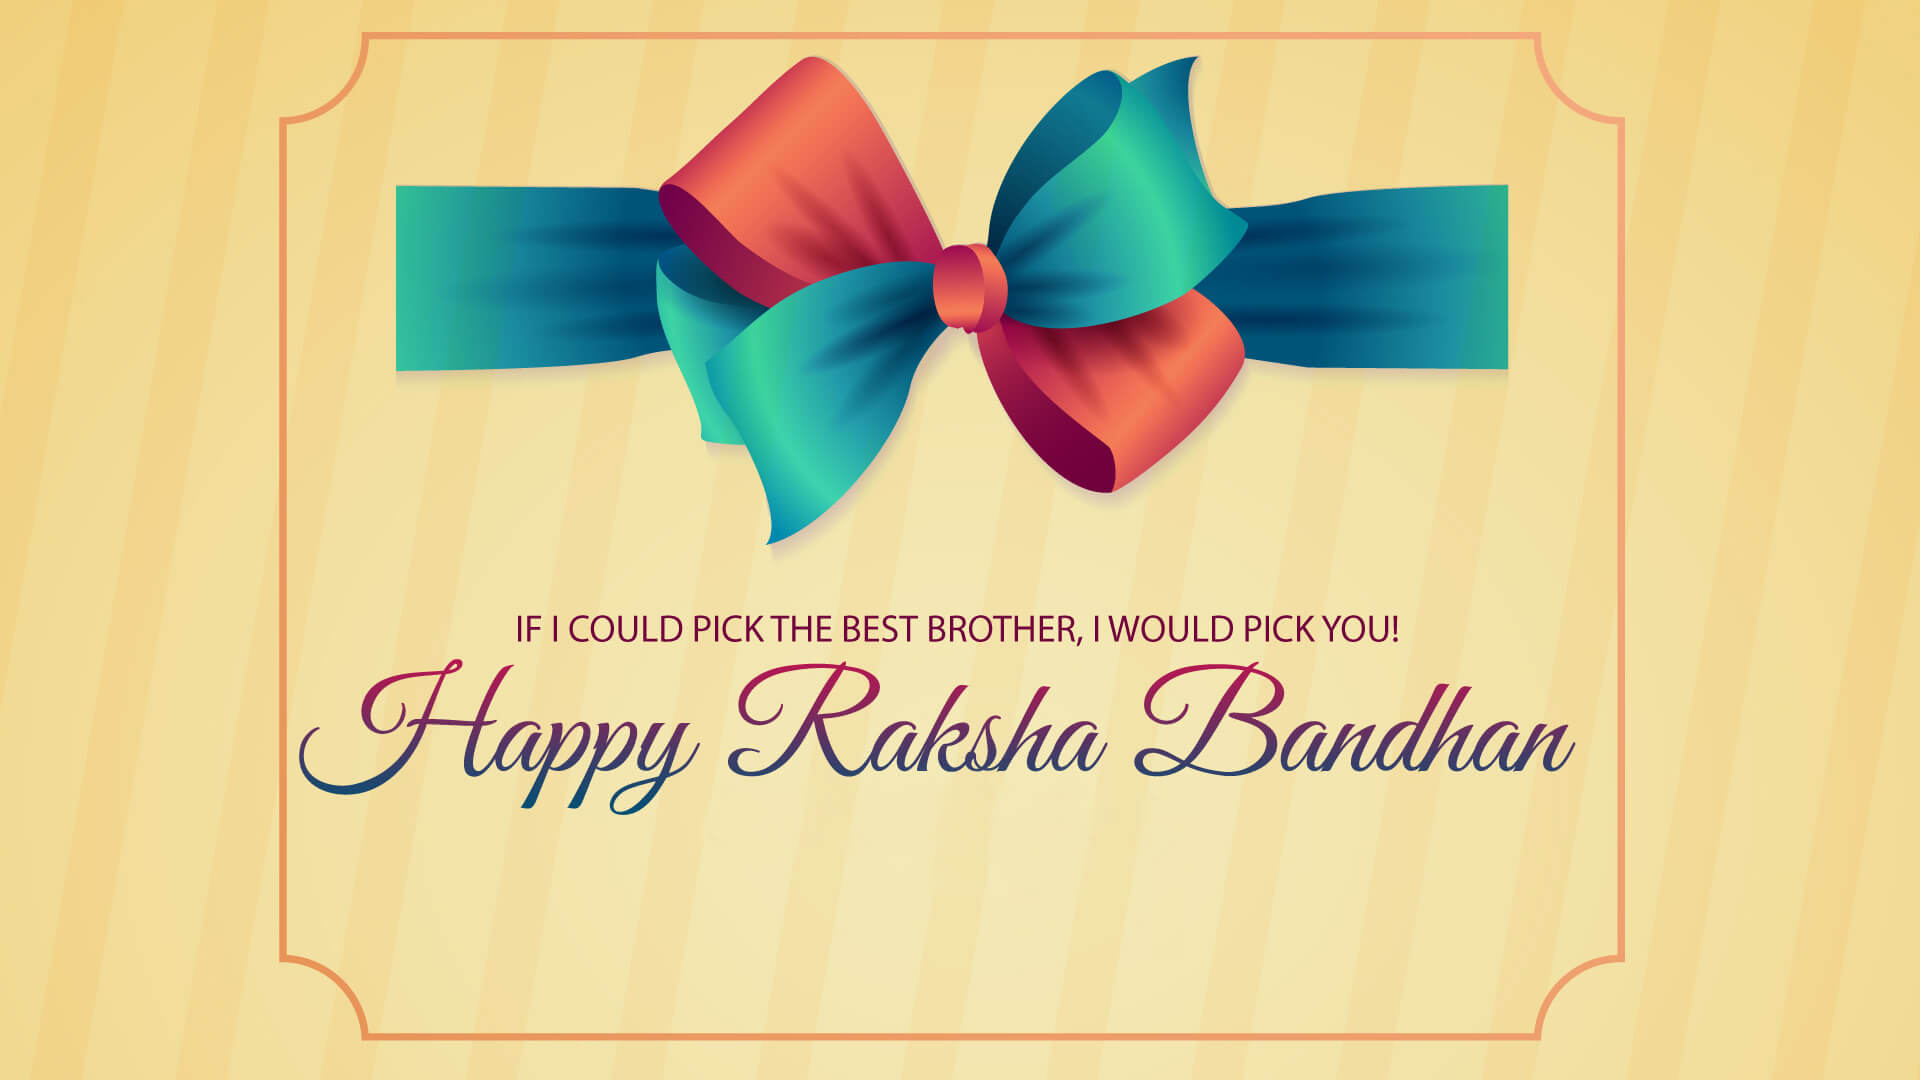 happy Raksha Bandhan images wallpapers HD